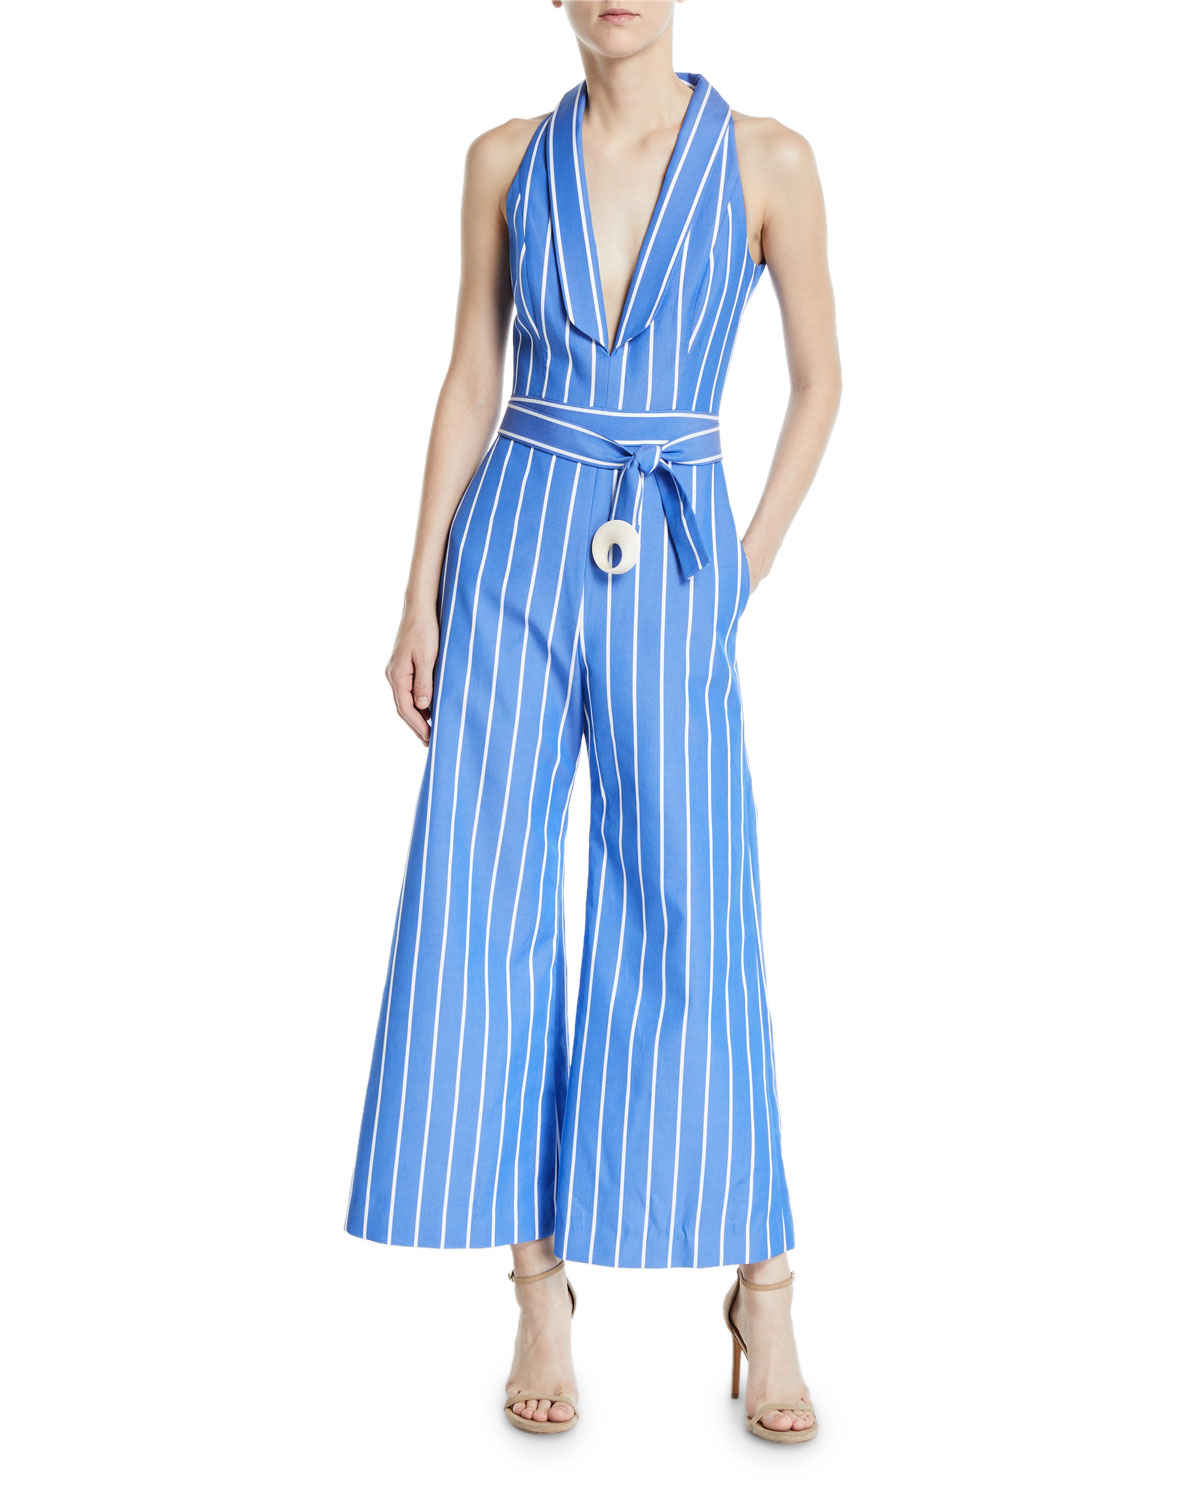 Alexis Suits ECKHART STRIPED SLEEVELESS WIDE-LEG JUMPSUIT